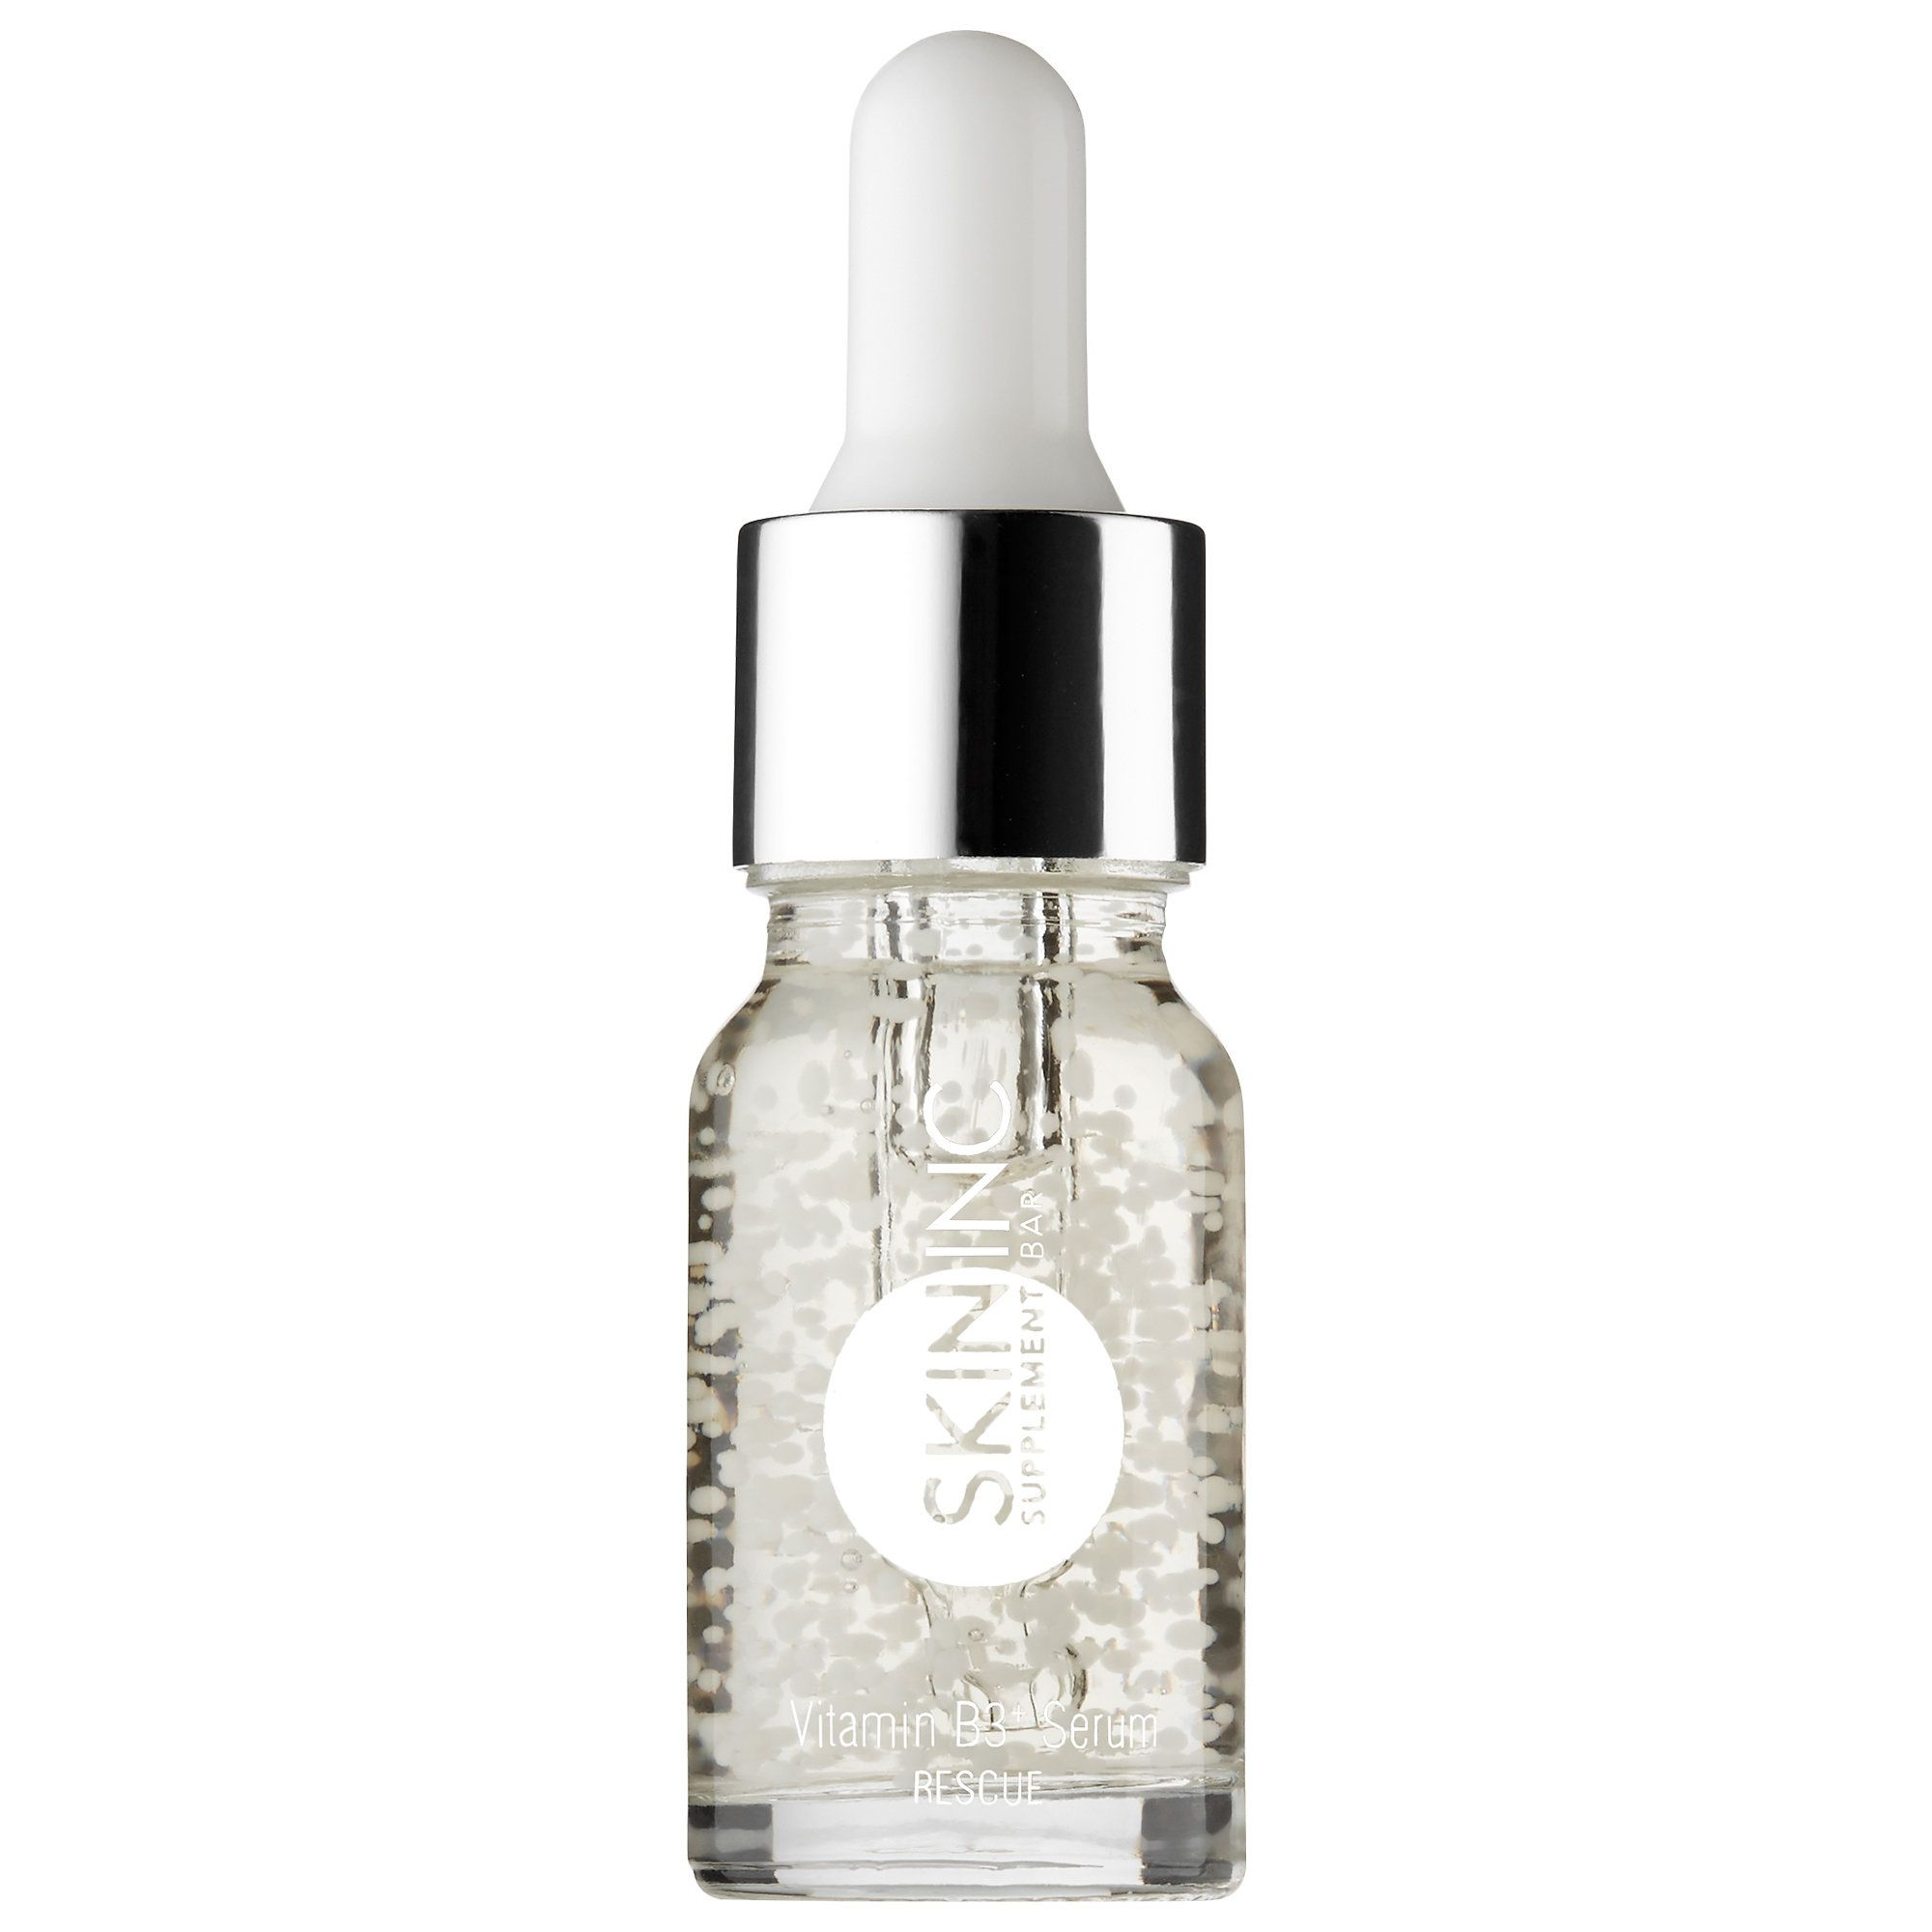 Skin Inc's Vitamin B3+ Niacinamide Serum RESCUE TROUBLED SKIN